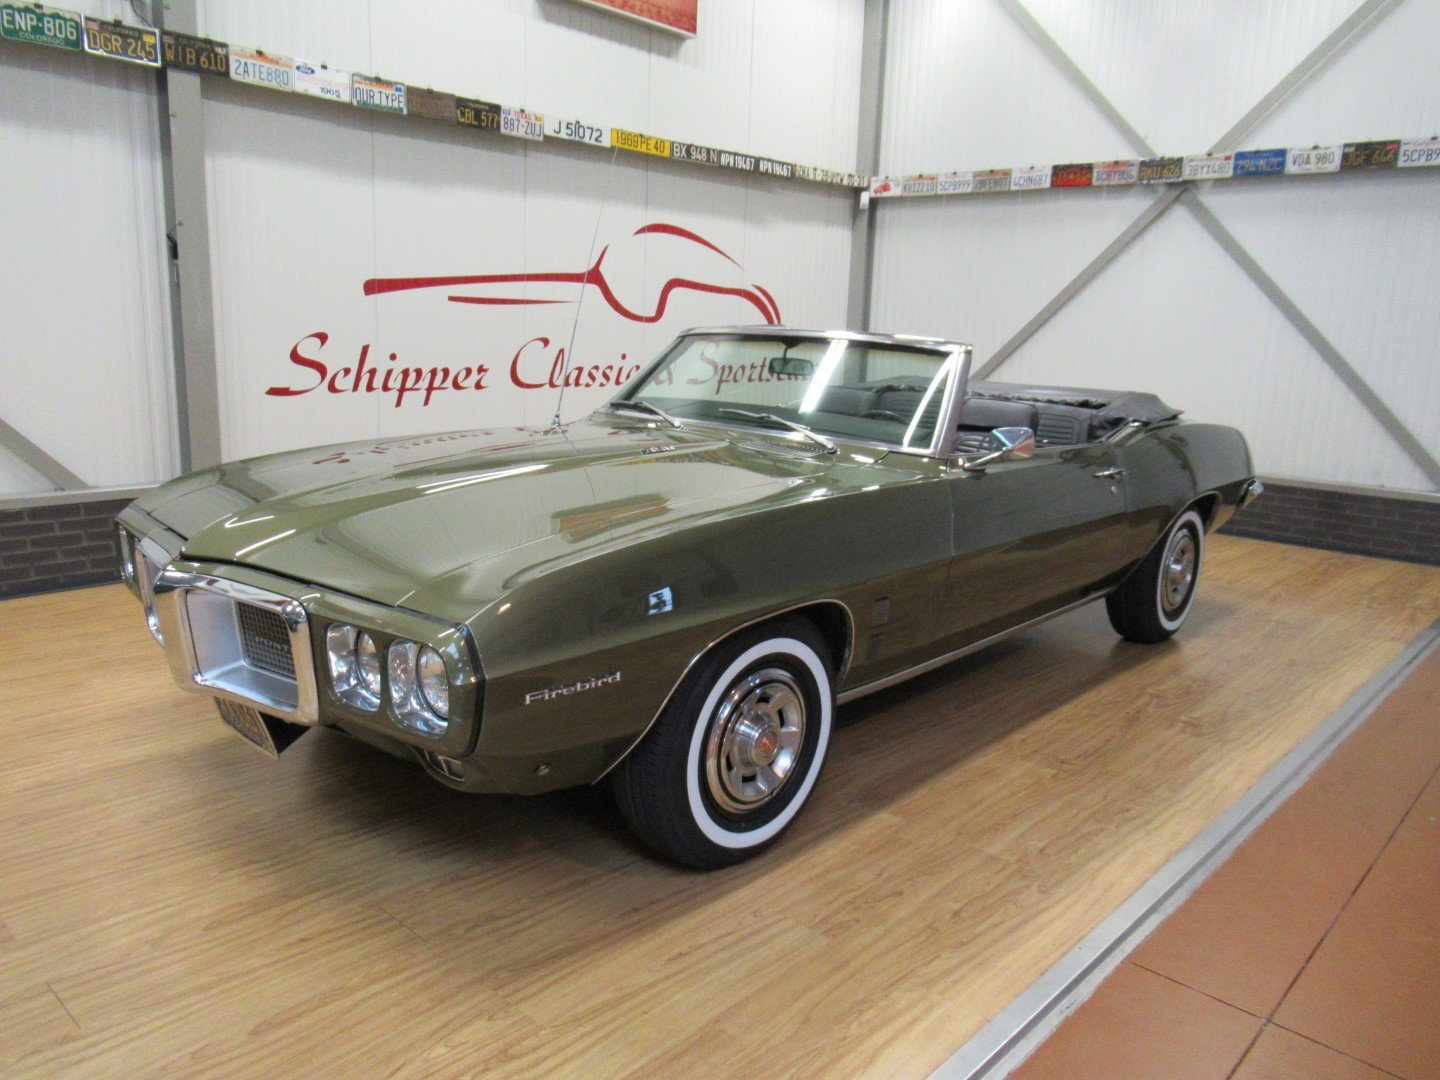 1969 Pontiac Firebird 350CU V8 Convertible Second owner For Sale (picture 1 of 6)